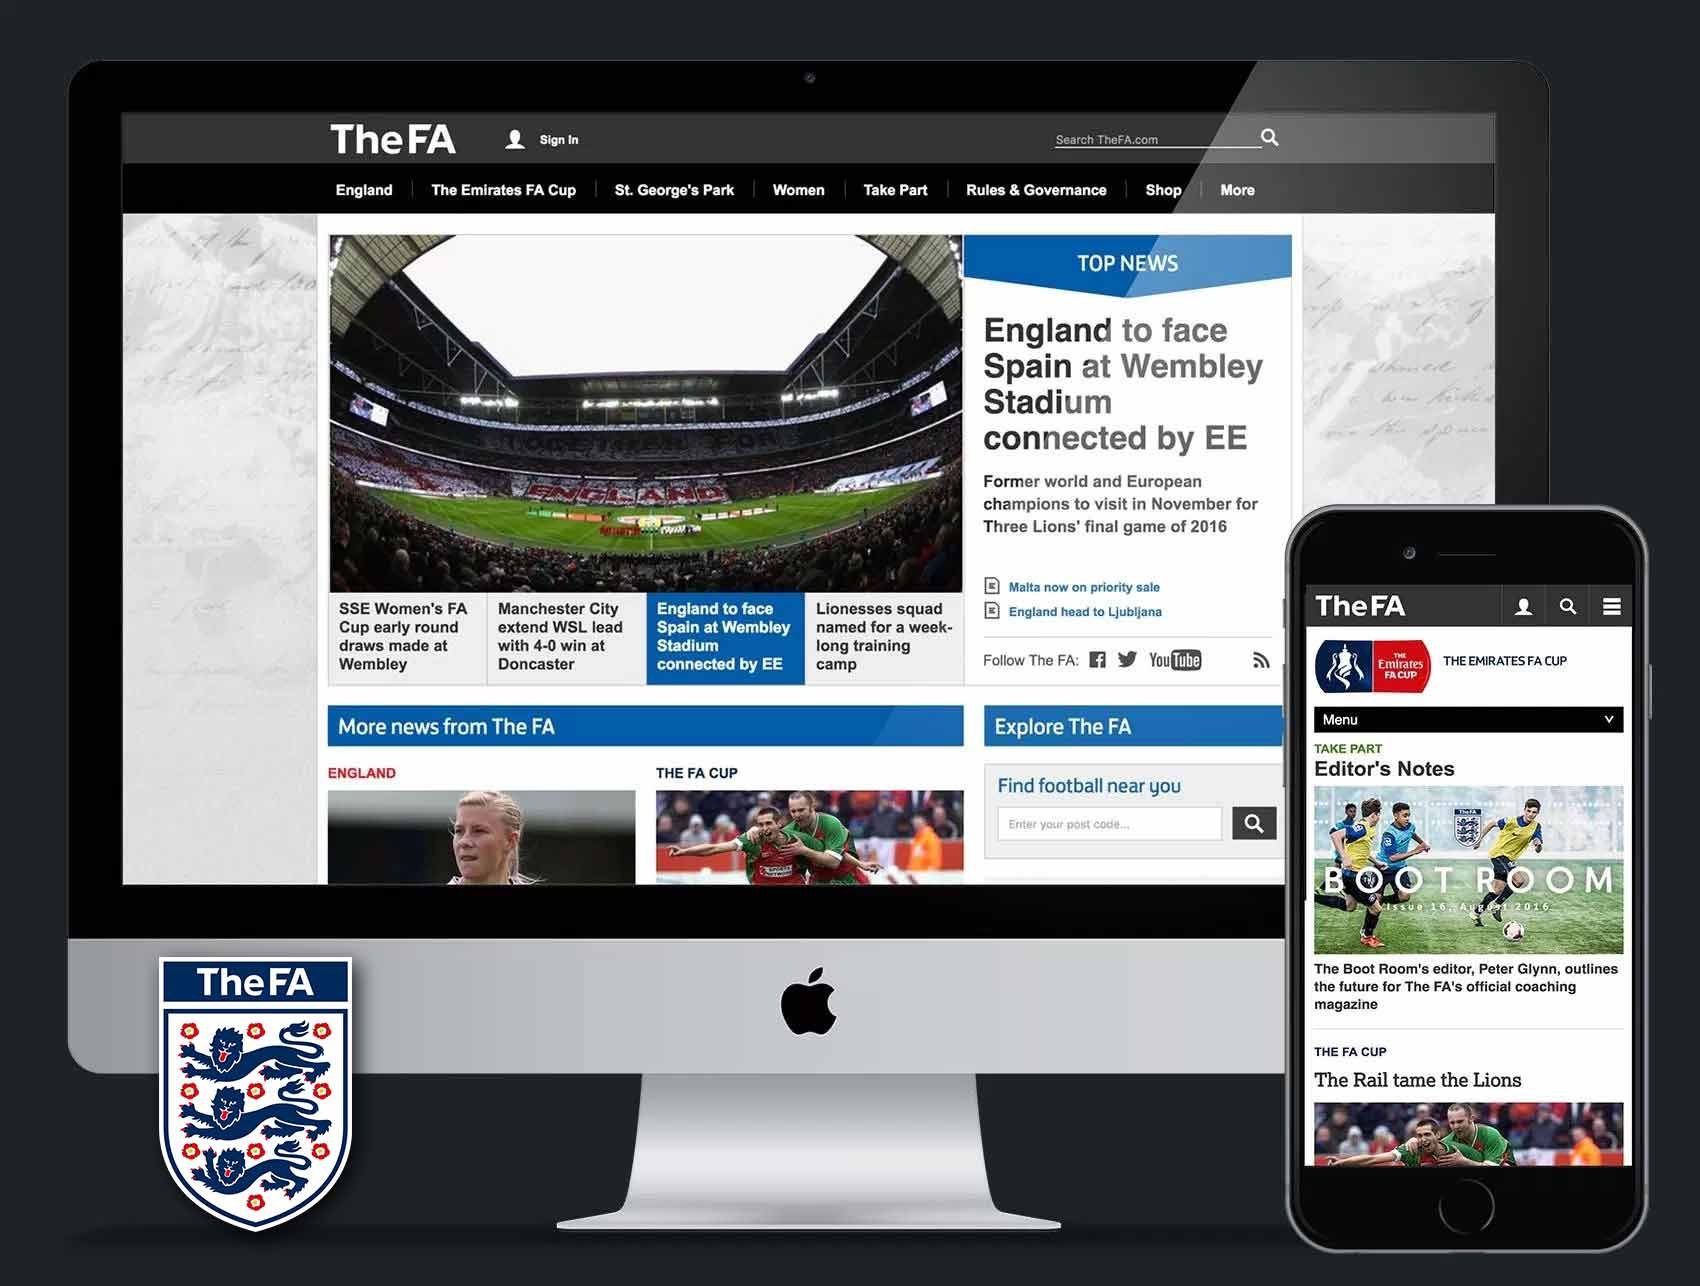 TheFA.com (The Football Association): UX & UI